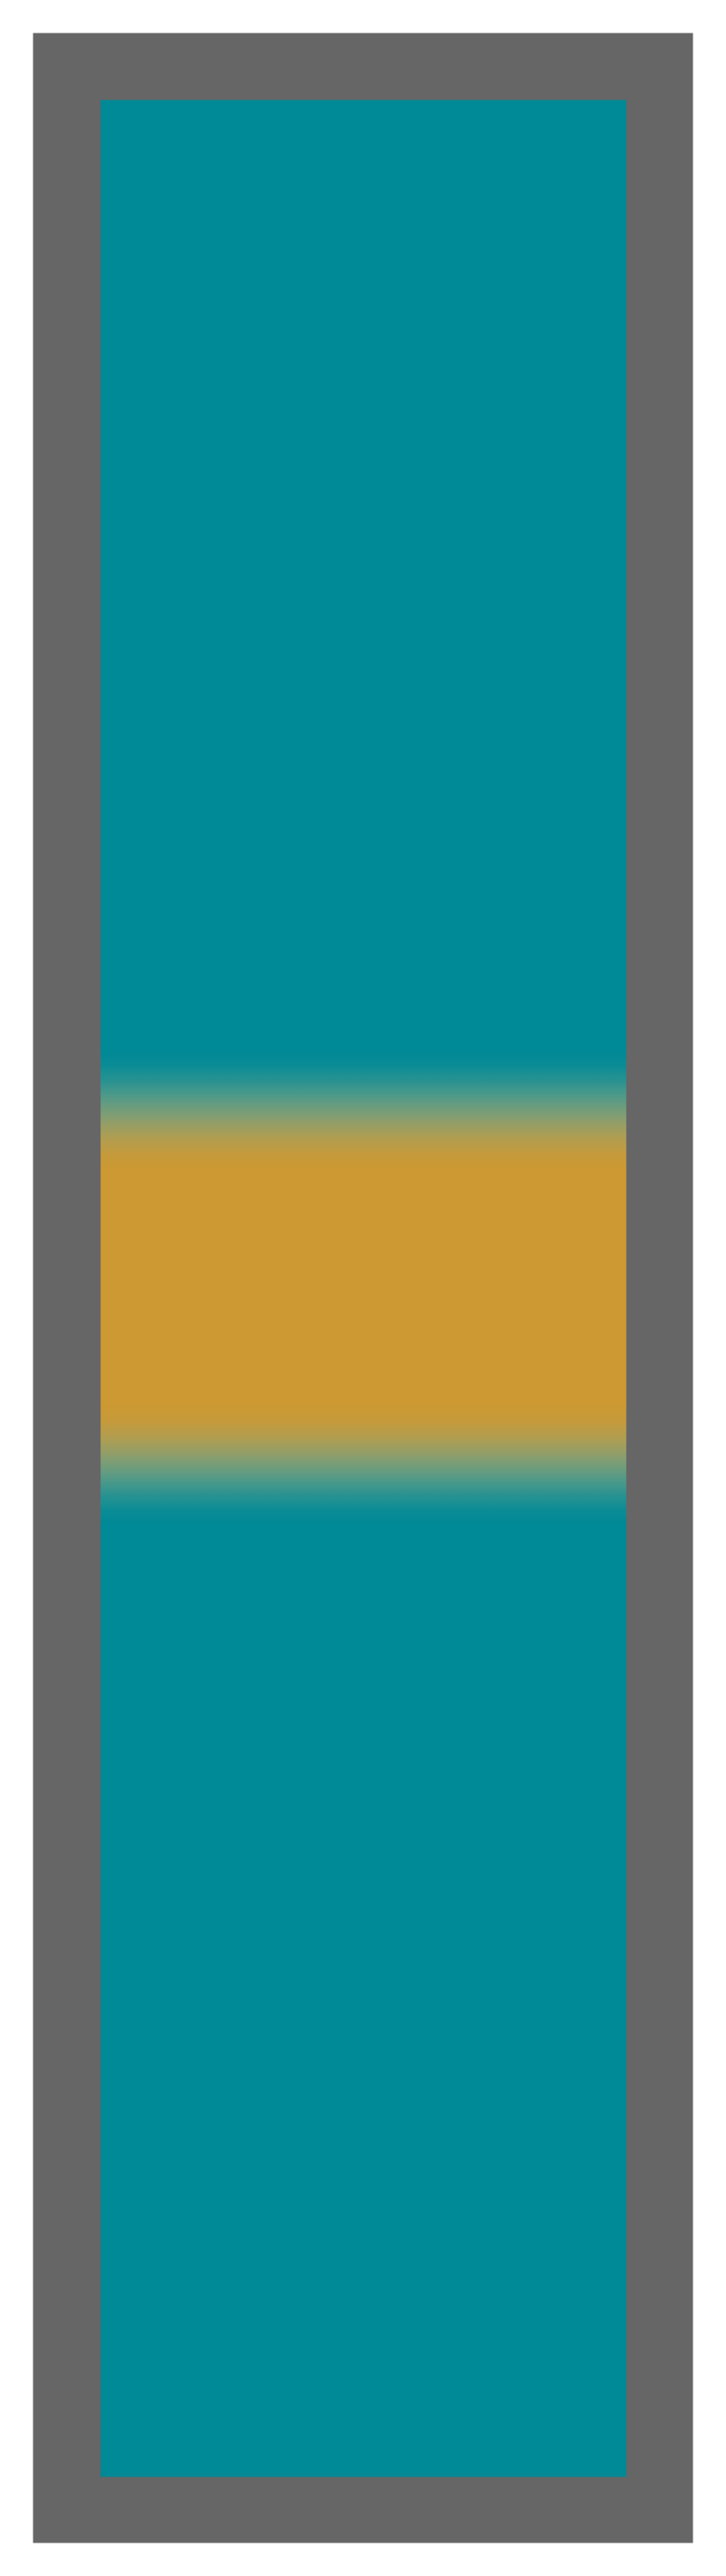 Teal-Gold Center Tailless